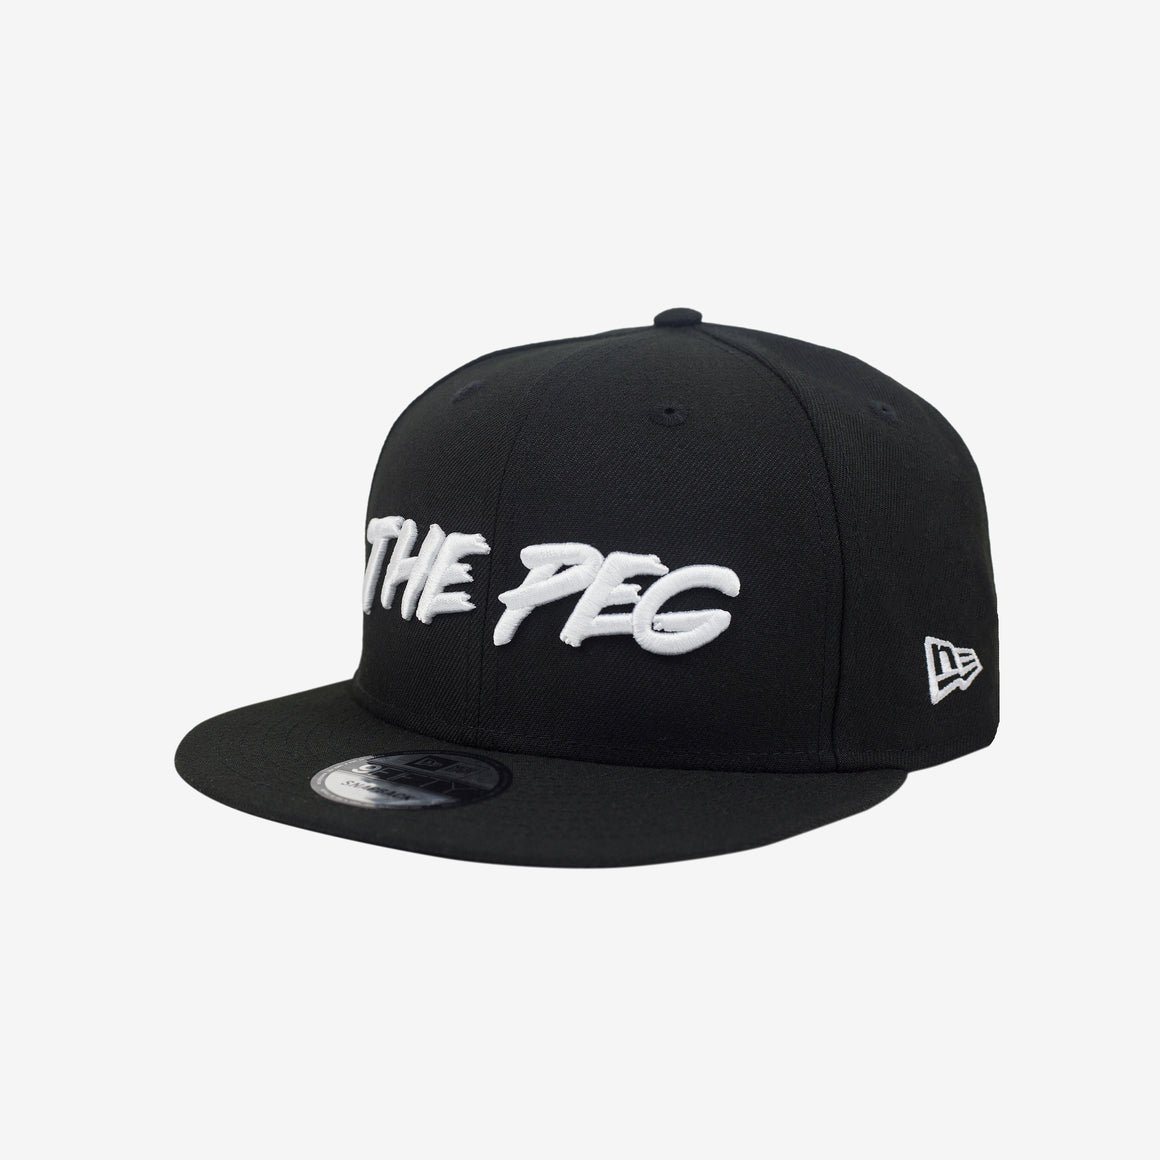 New Era 9FIFTY Classic Snapback (Paintbrush Black)